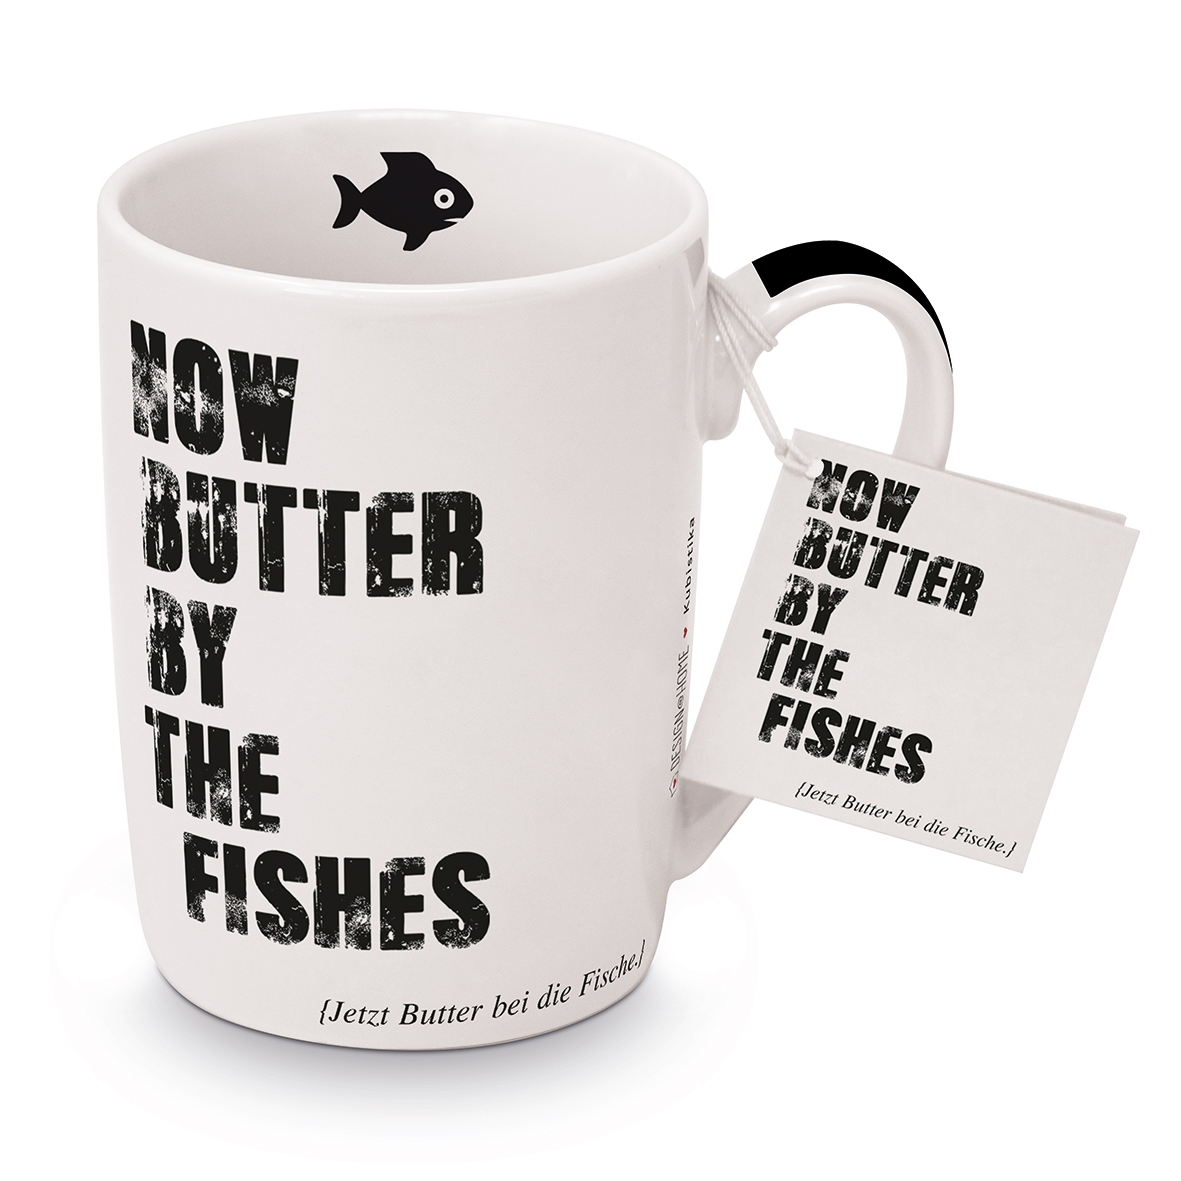 Porcelain Cup - Butter by the fishes